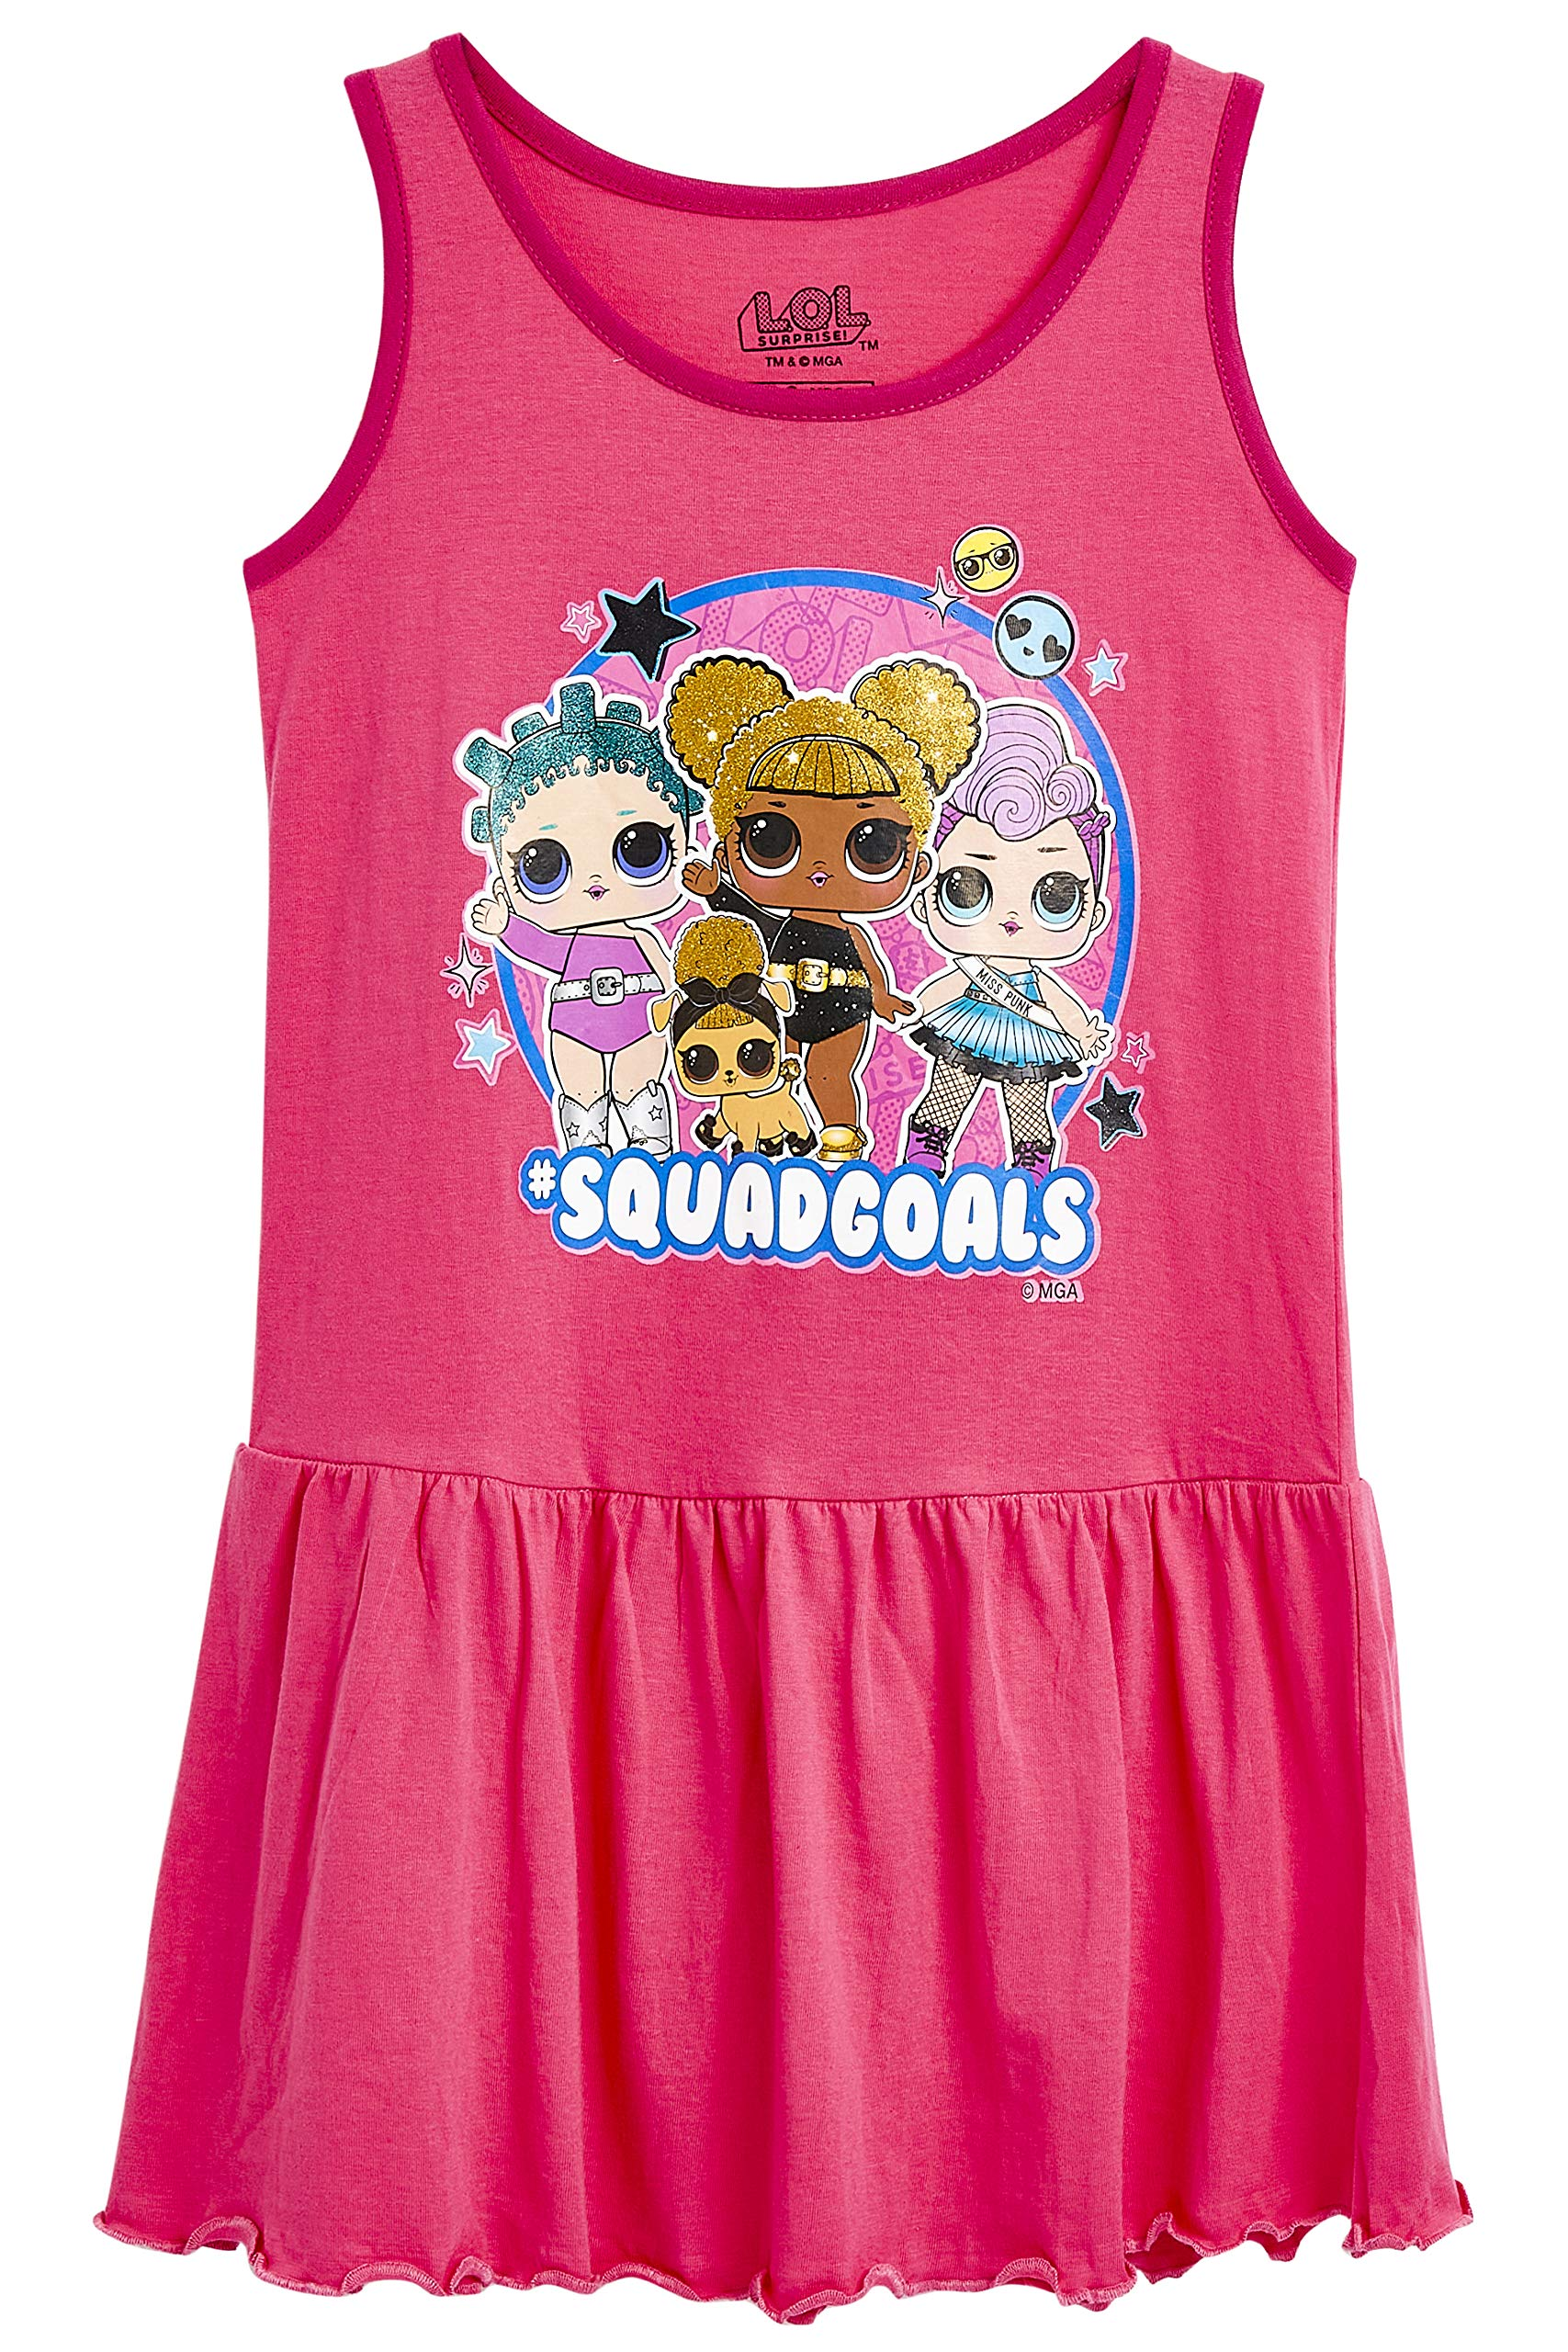 L.O.L. Surprise ! LOL Dolls Dress for Girls | Sleeveless Pink Girls Dress | 100% Cotton Confetti Pop Toddler Children Summer Clothes | Gift for 4 5 6 7 8 9 10 11 12 Year Old Girl